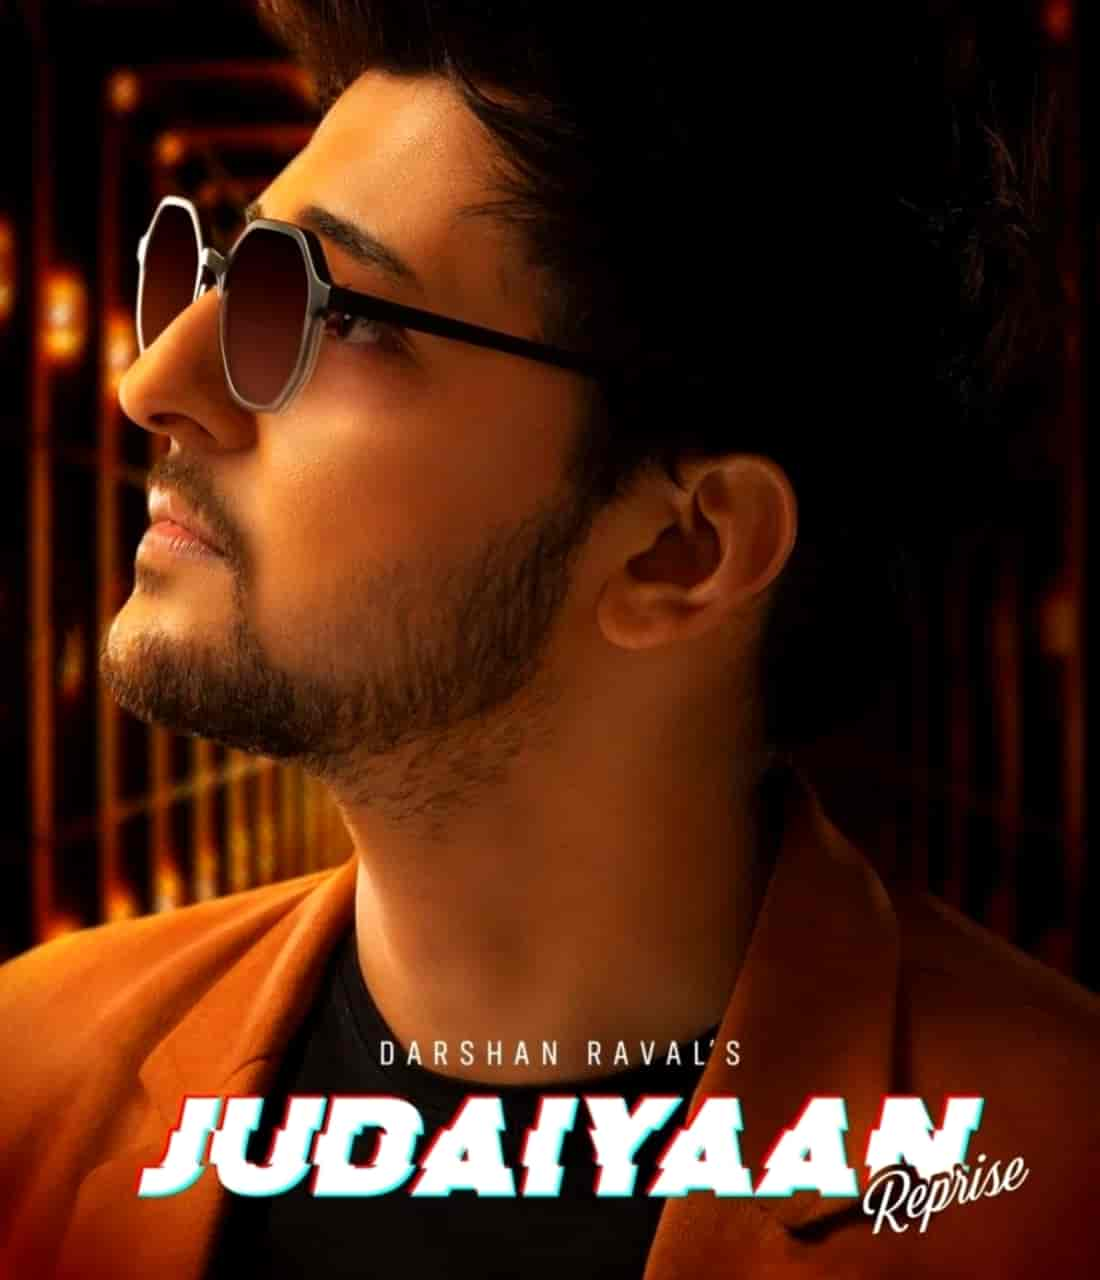 Now Judaiyaan album team ready to release it's title track Judaiyaan Reprise version sung by Darshan Raval.